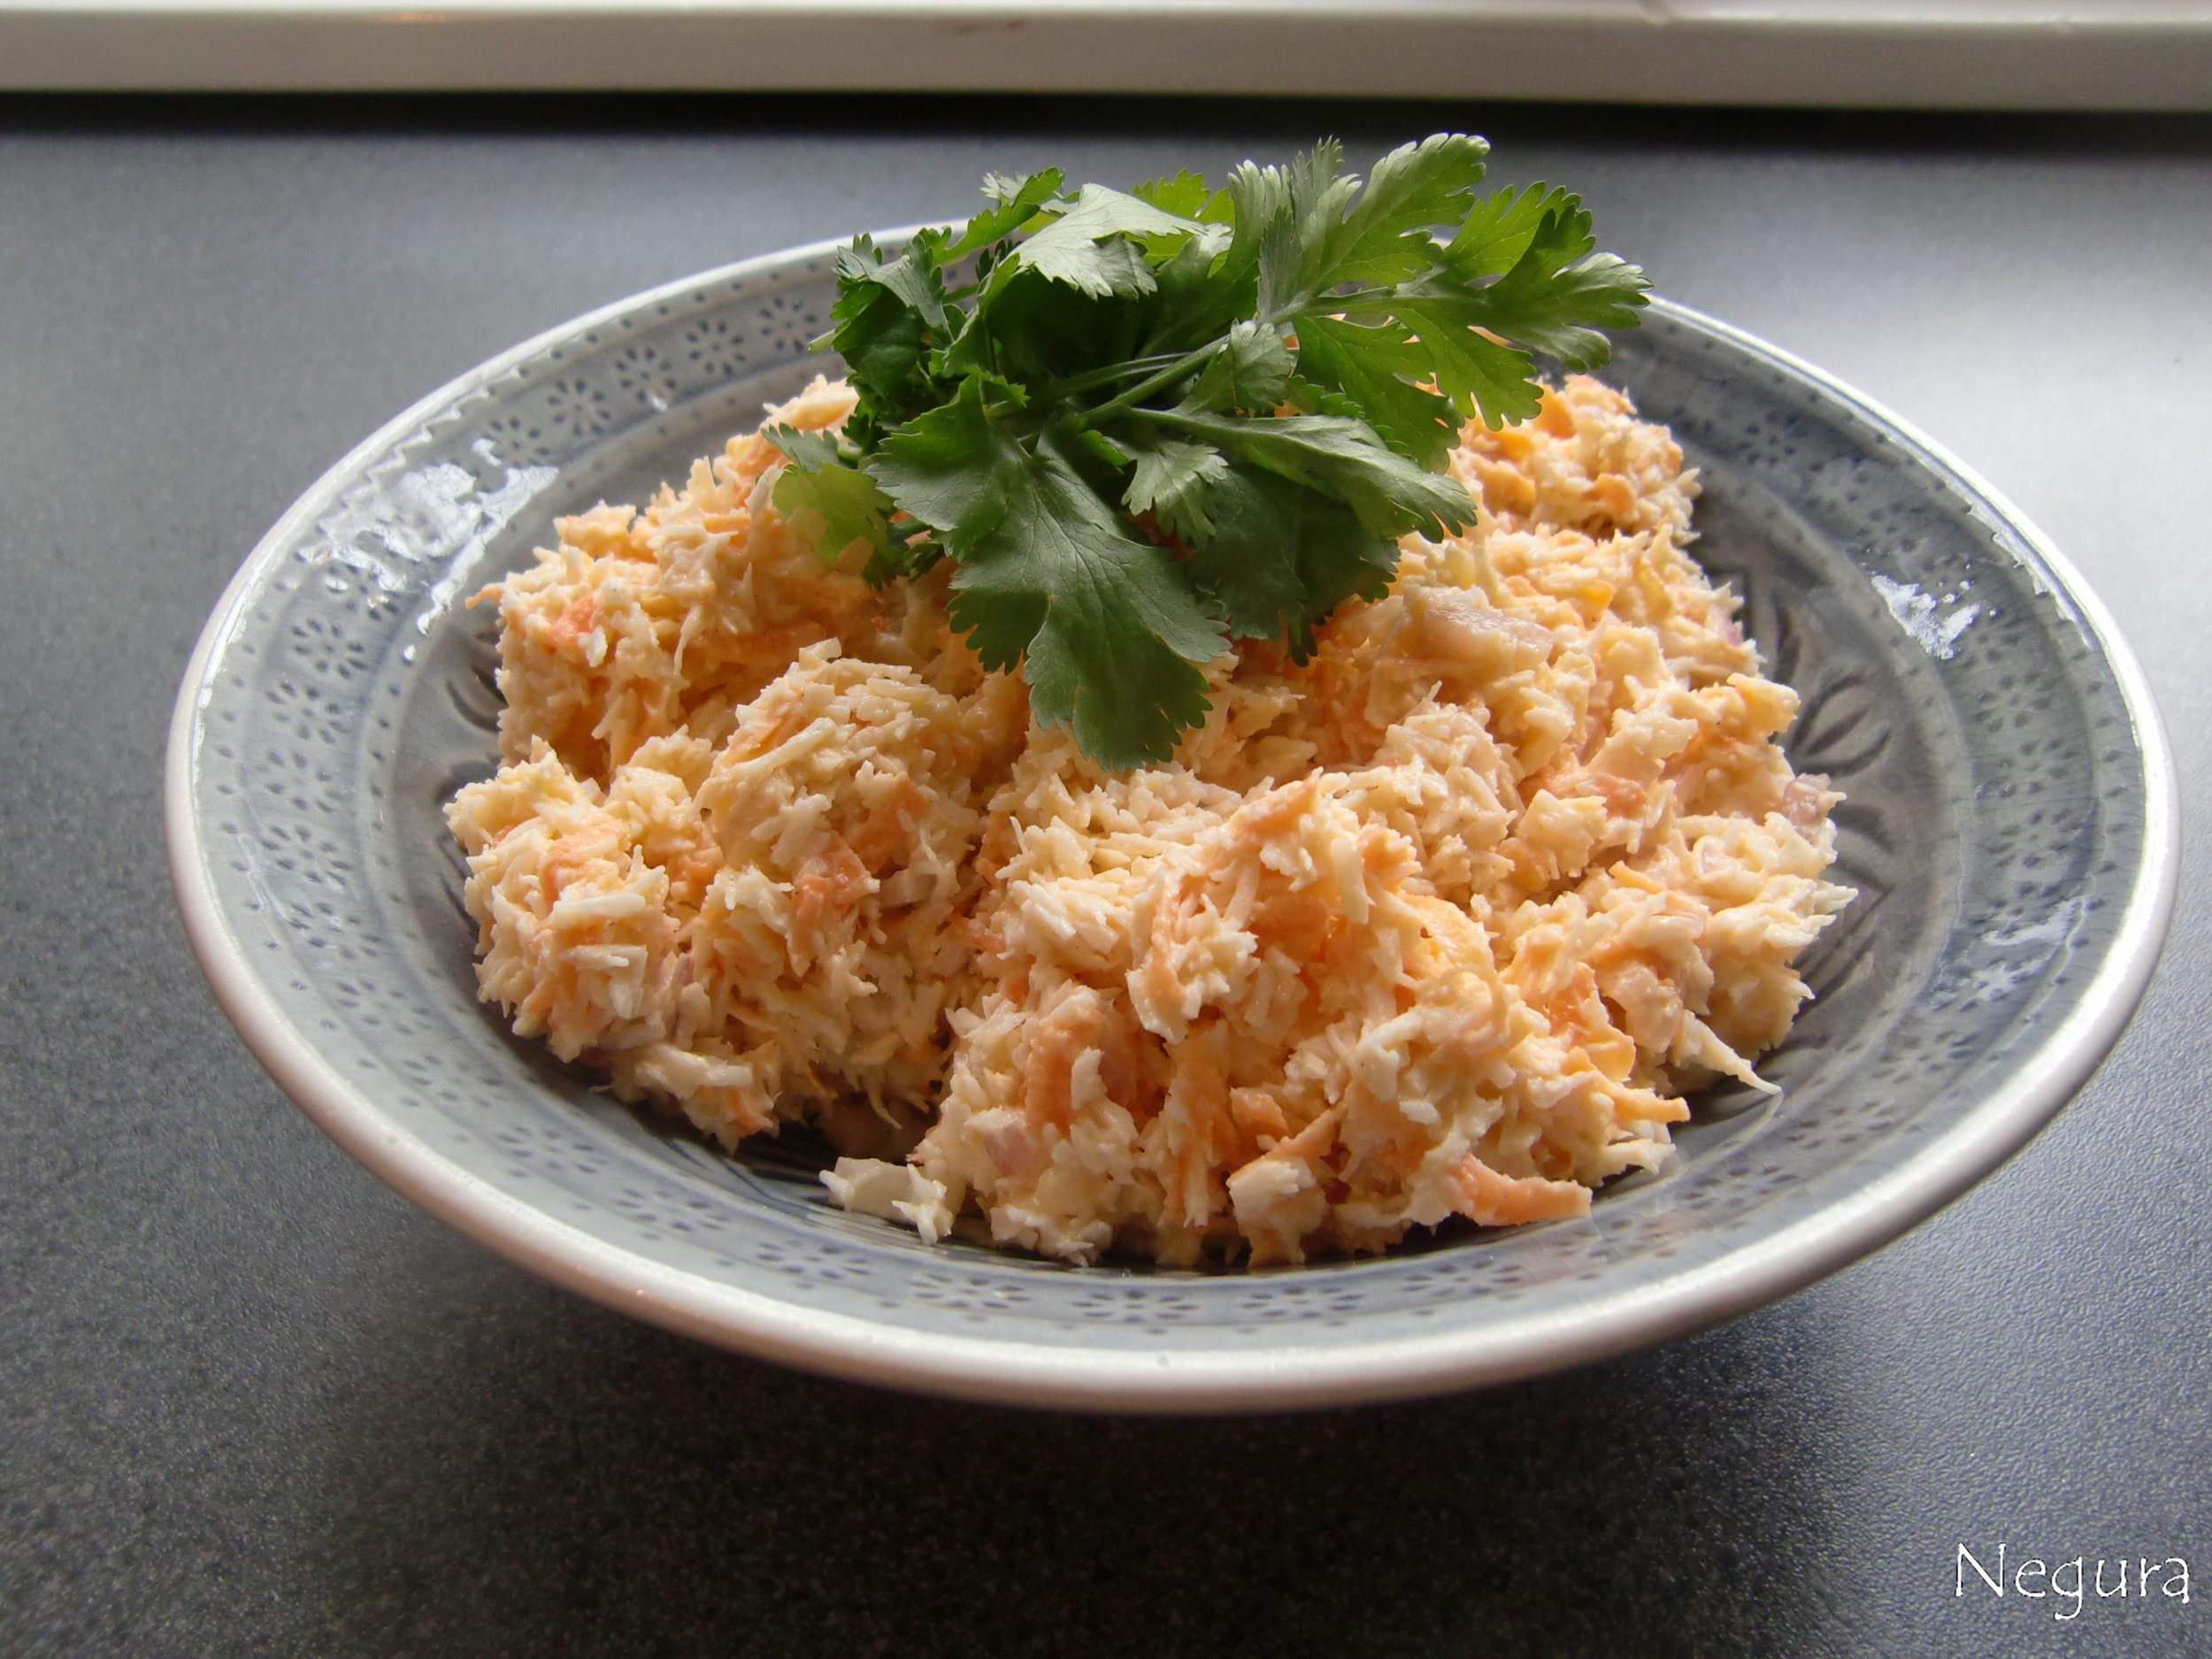 carrot and coconut sambal (3)_stamped.jpg